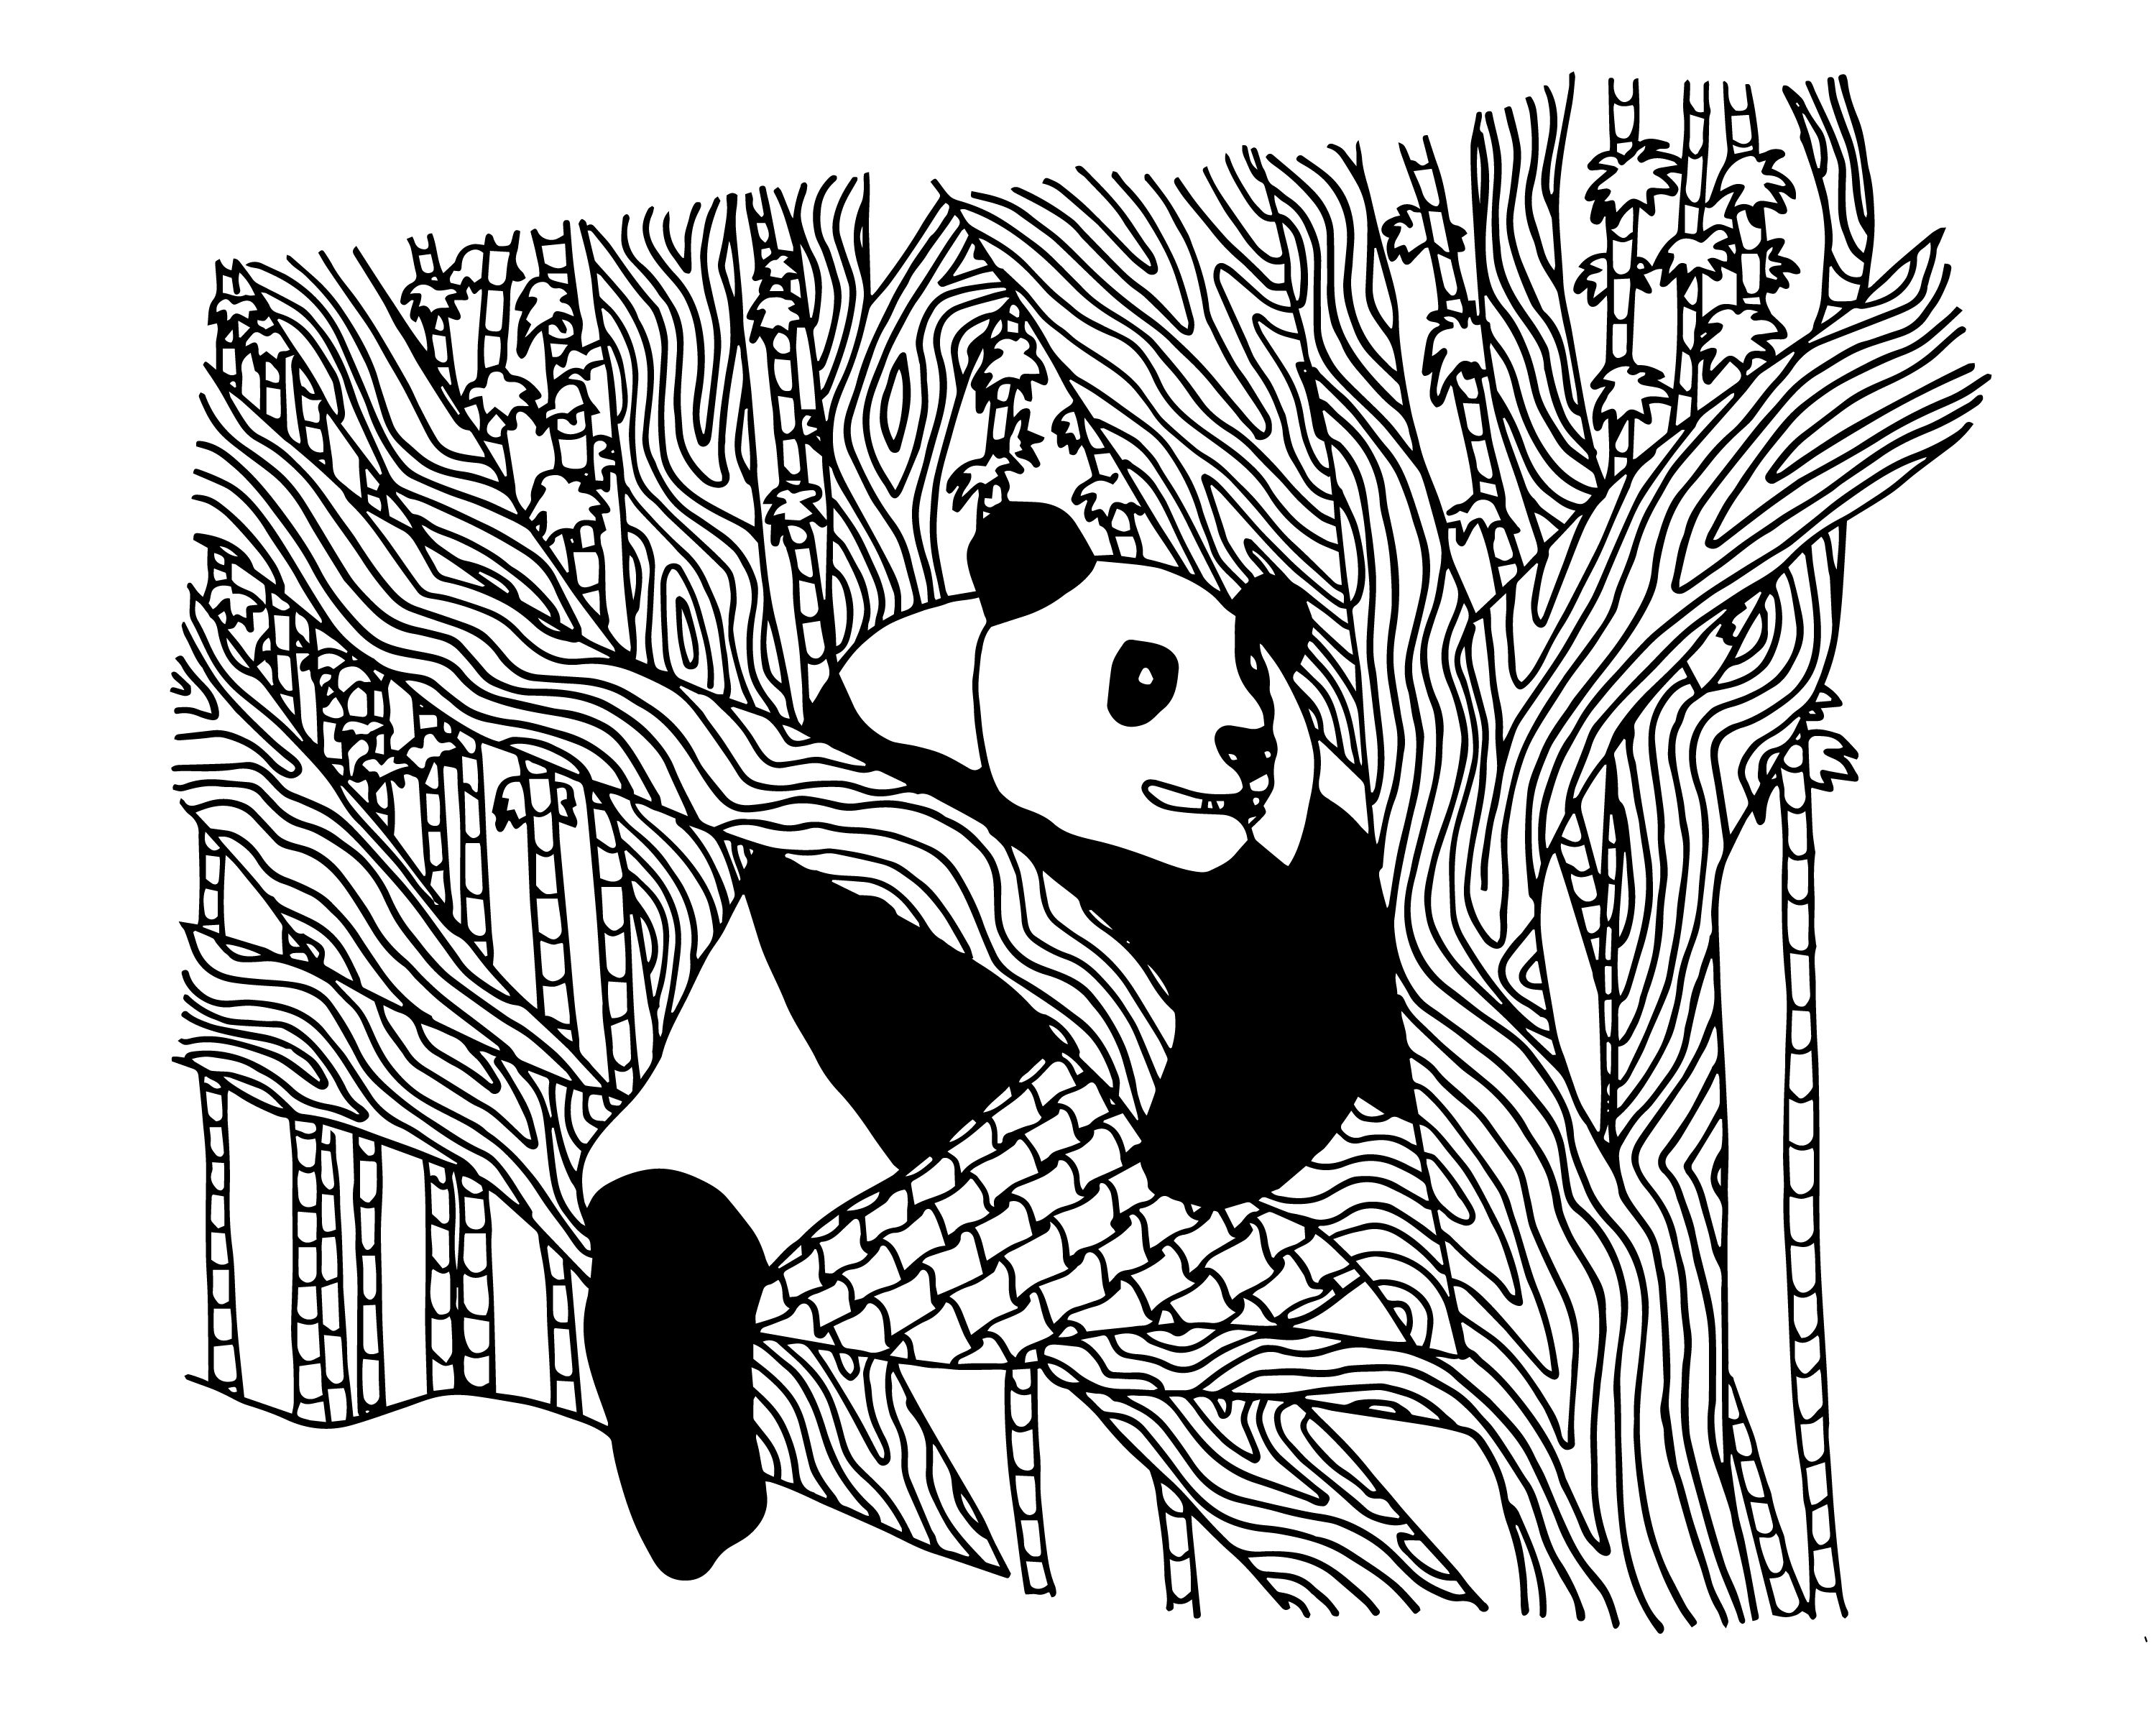 free panda coloring pages for adults - Panda Pictures To Color